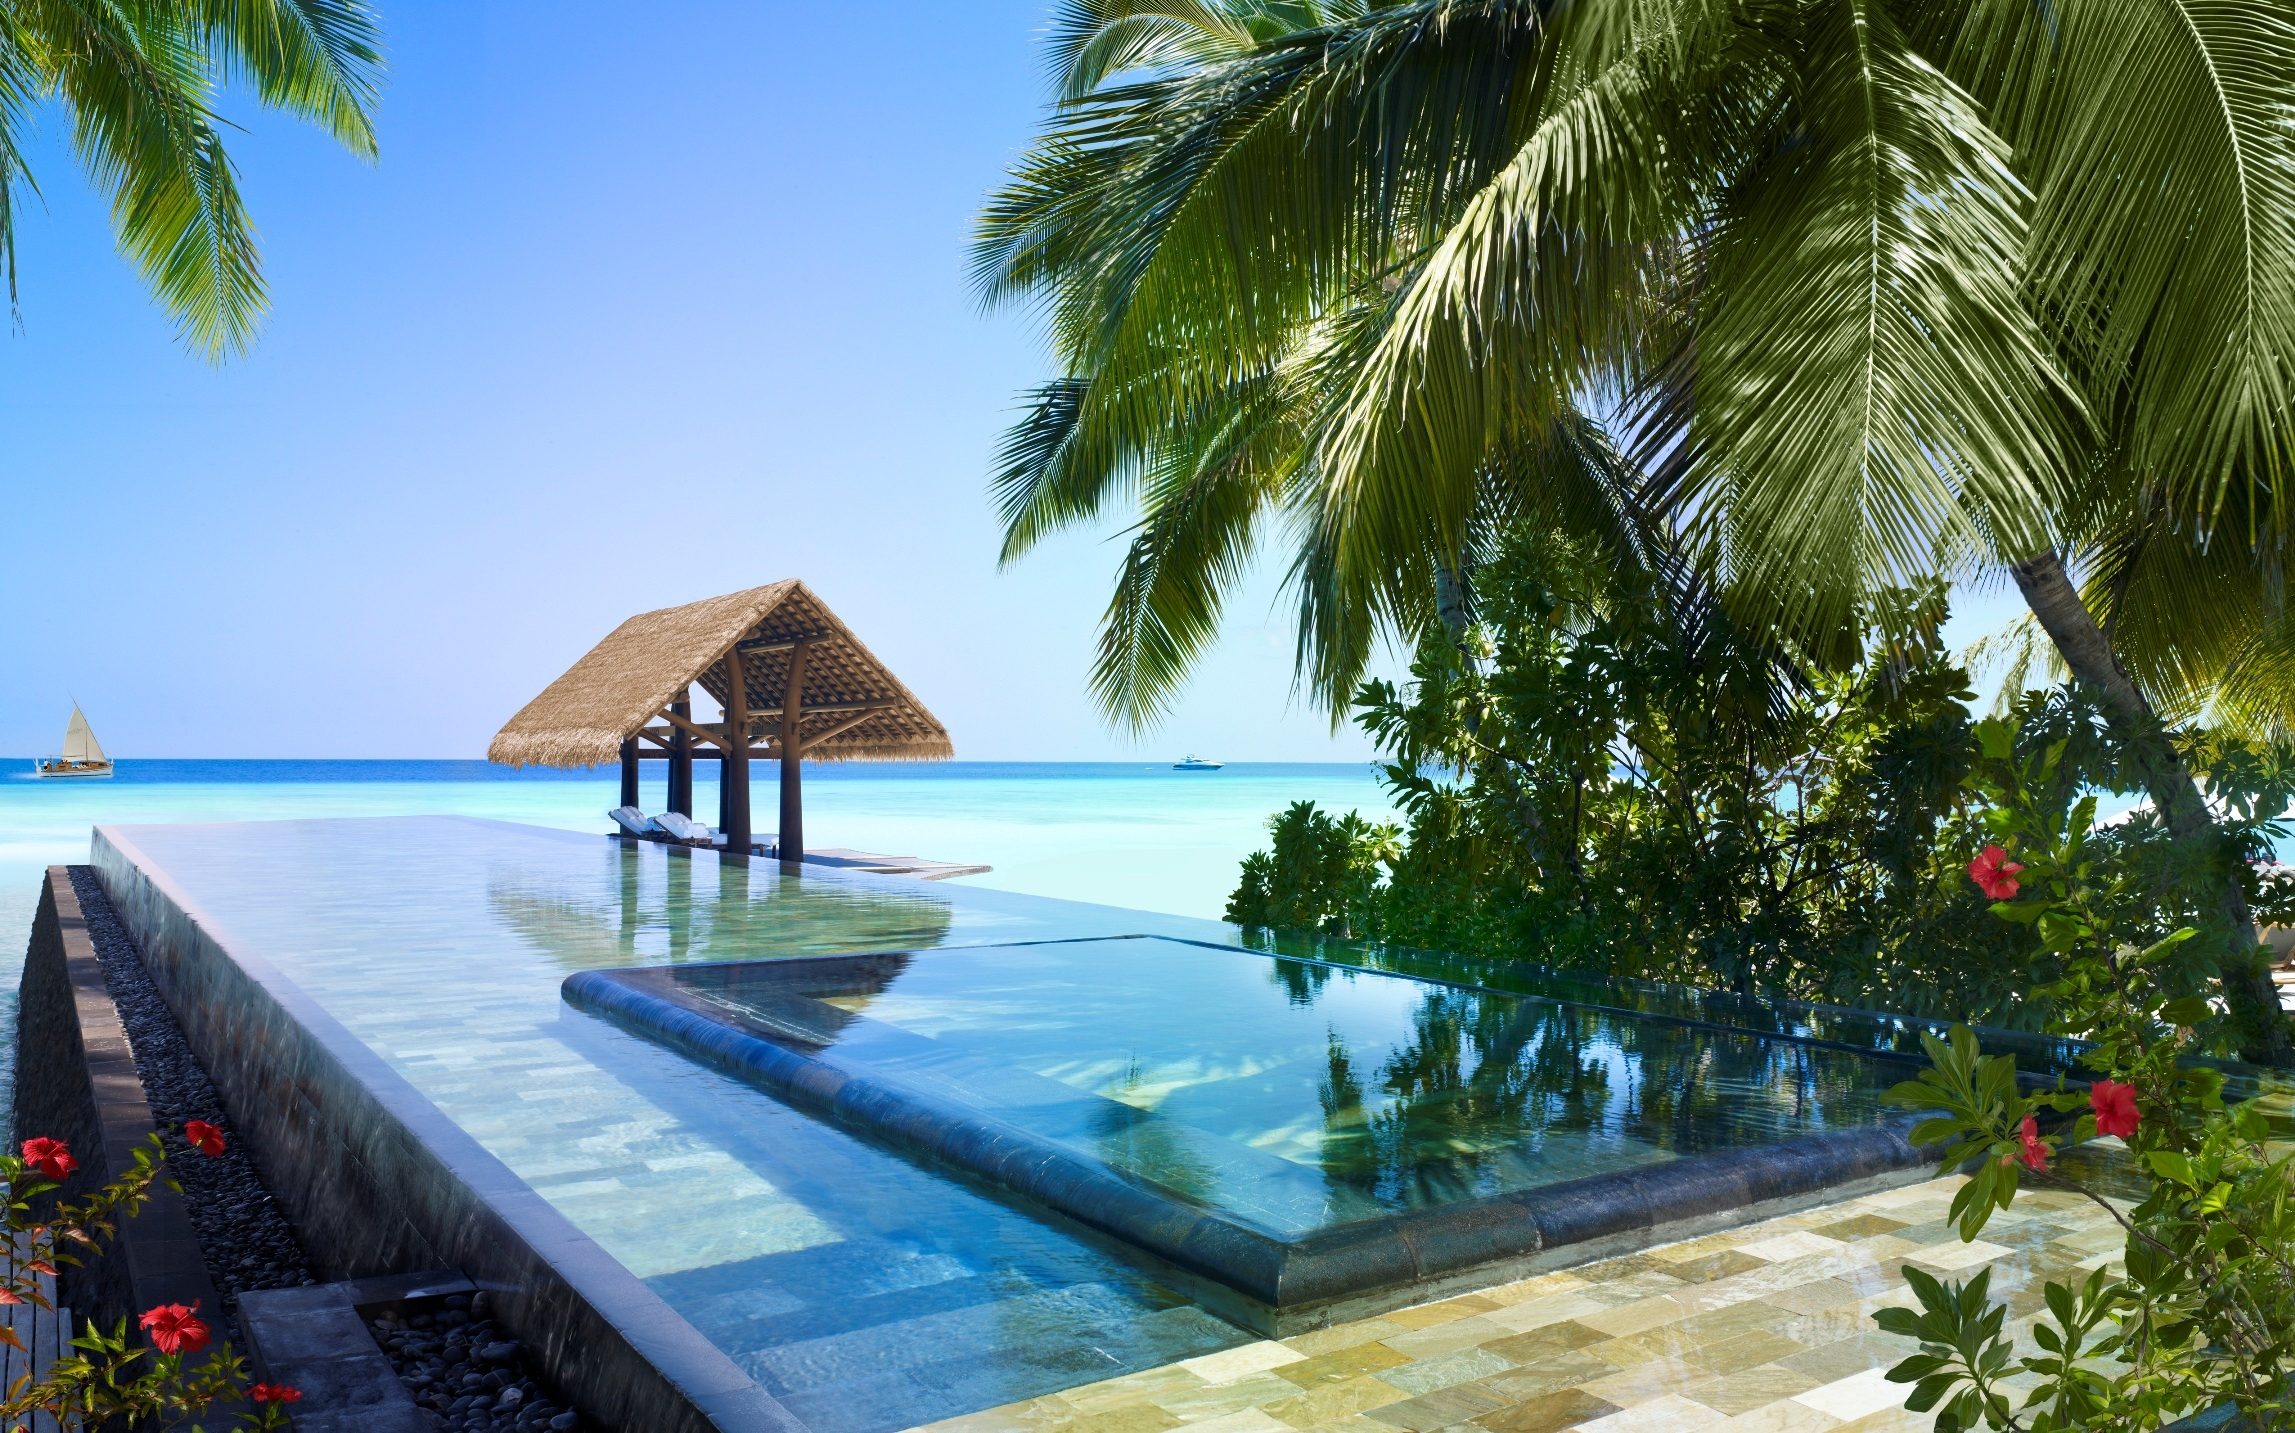 60443 download wallpaper Nature, Sea, Palms, Tropics screensavers and pictures for free